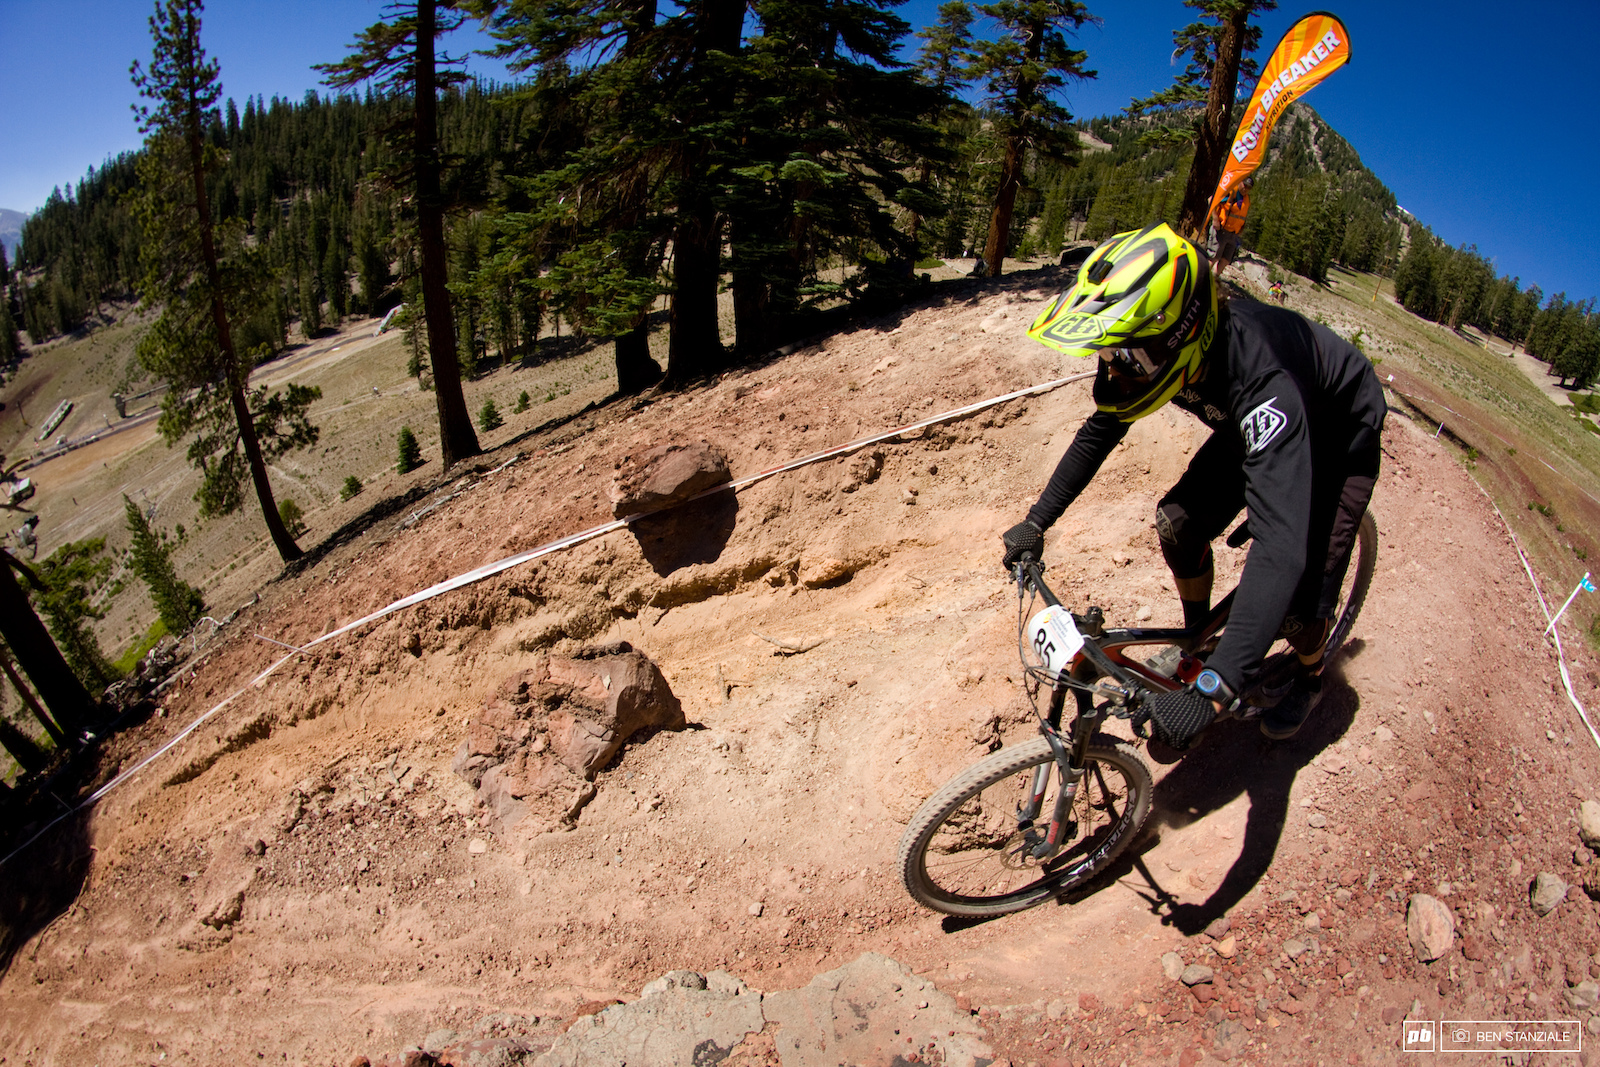 Shared with Saturday s Downhill track the Elevator Shaft is the final section of Stage 2 of the Enduro.